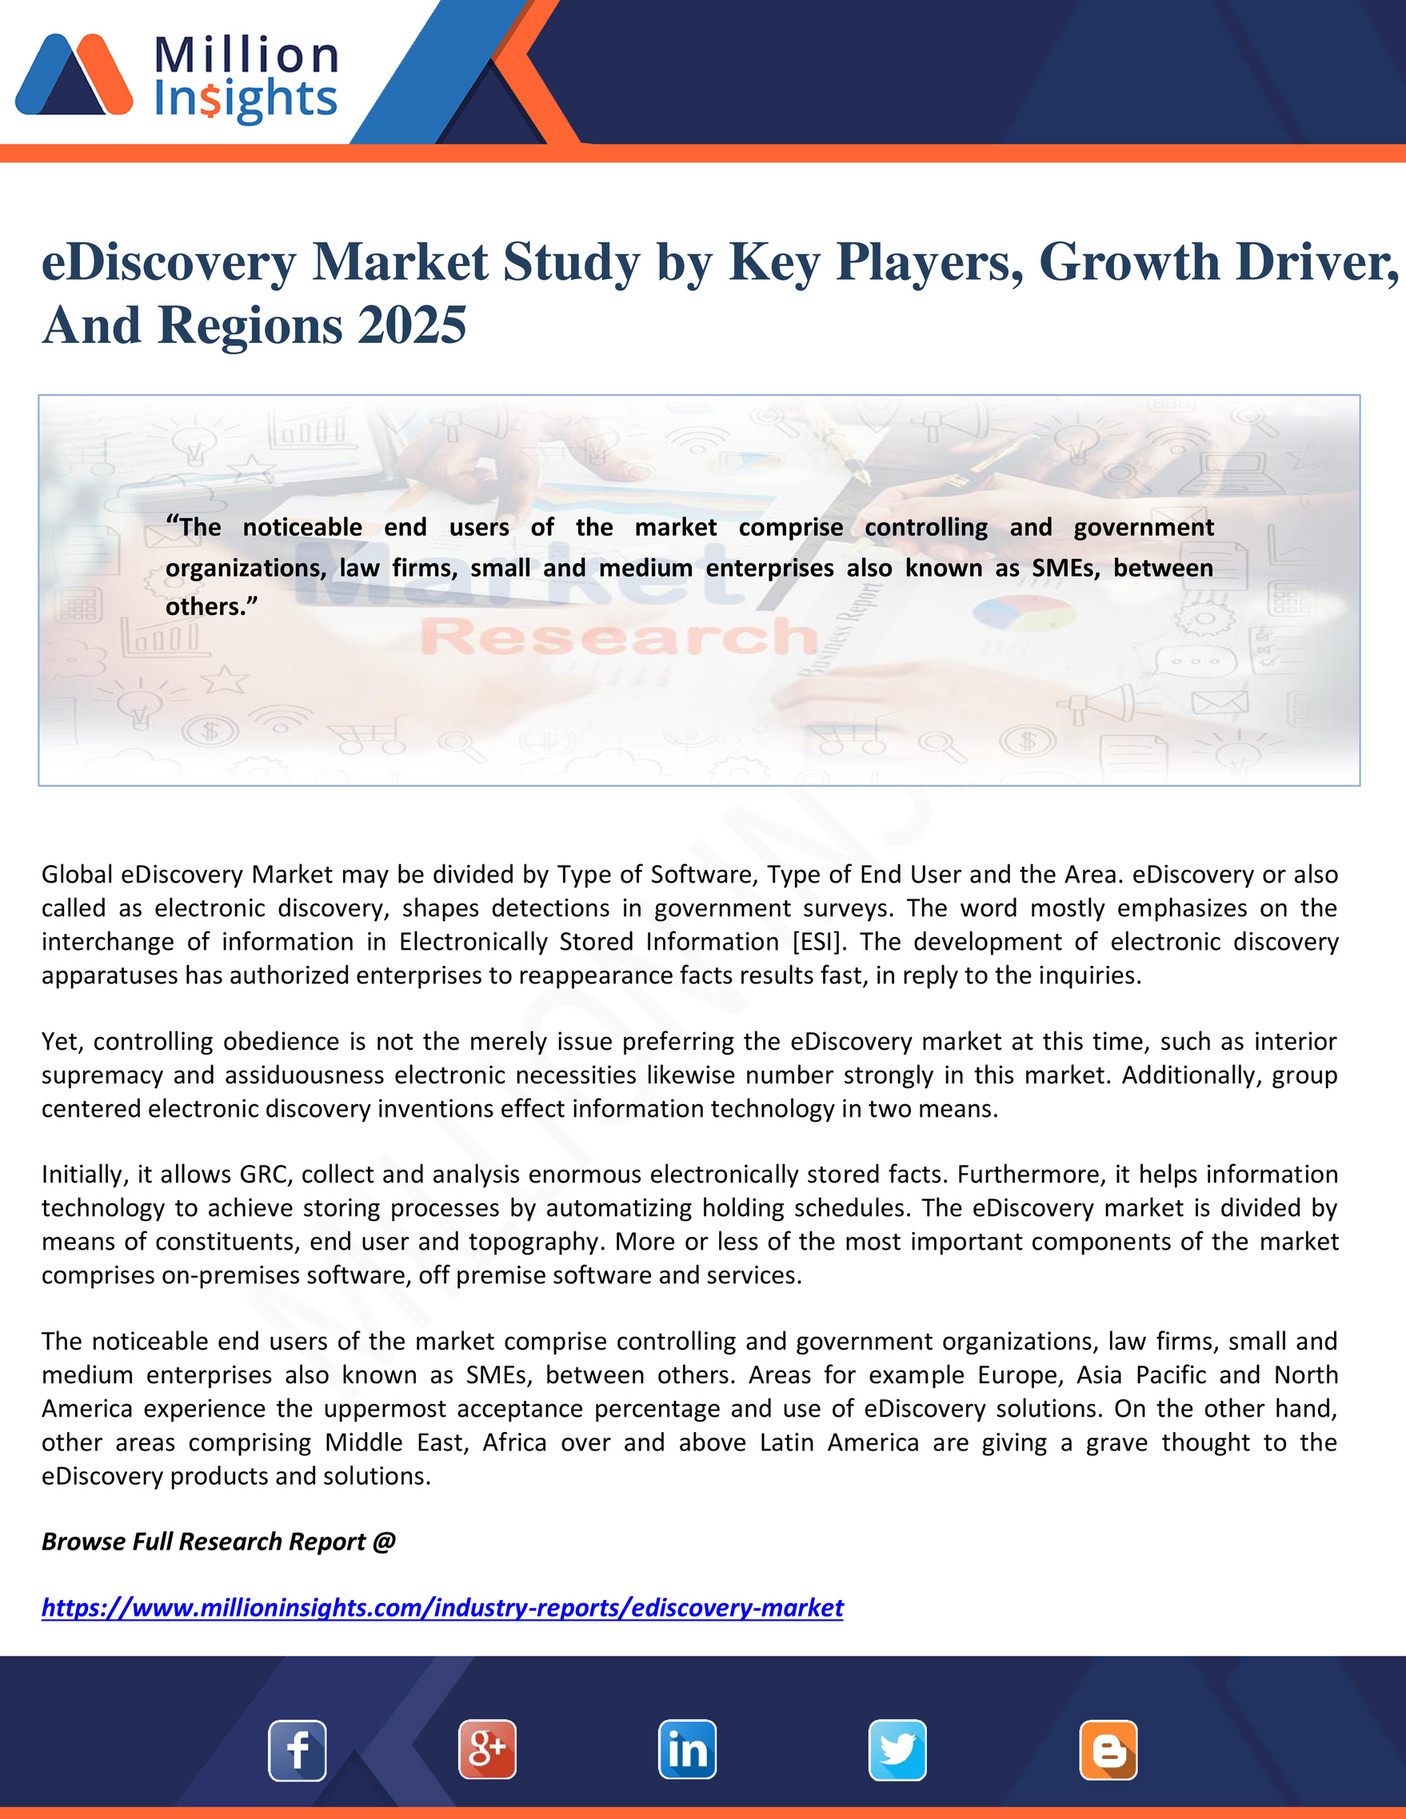 Million Insights - eDiscovery Market Study by Key Players, Growth